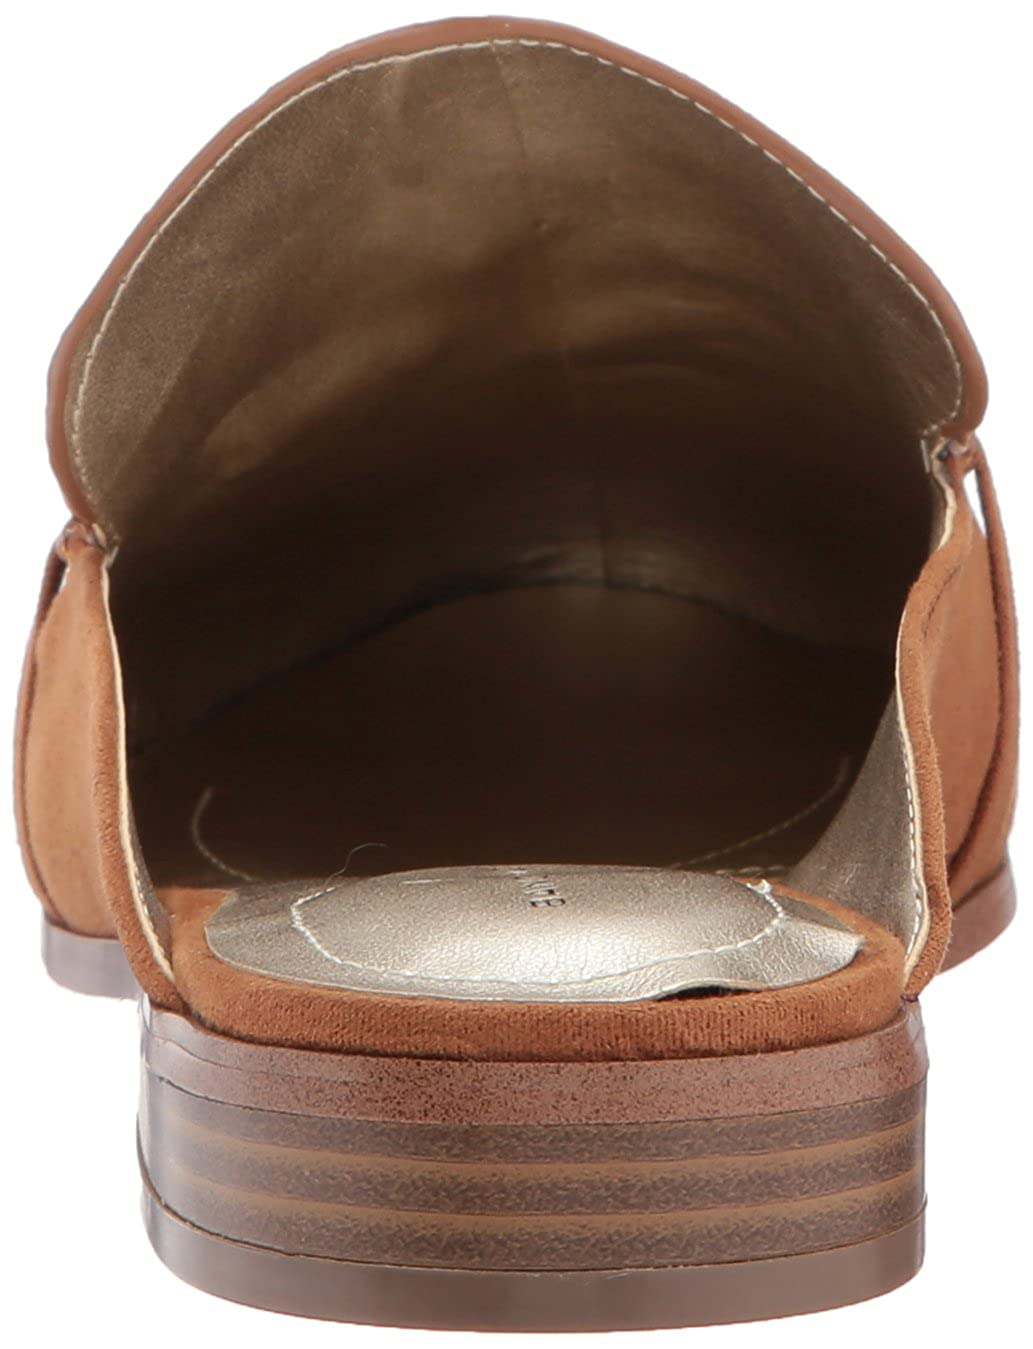 Bandolino Frauen Loafers Loafers Loafers  Toffee 2d3b7c